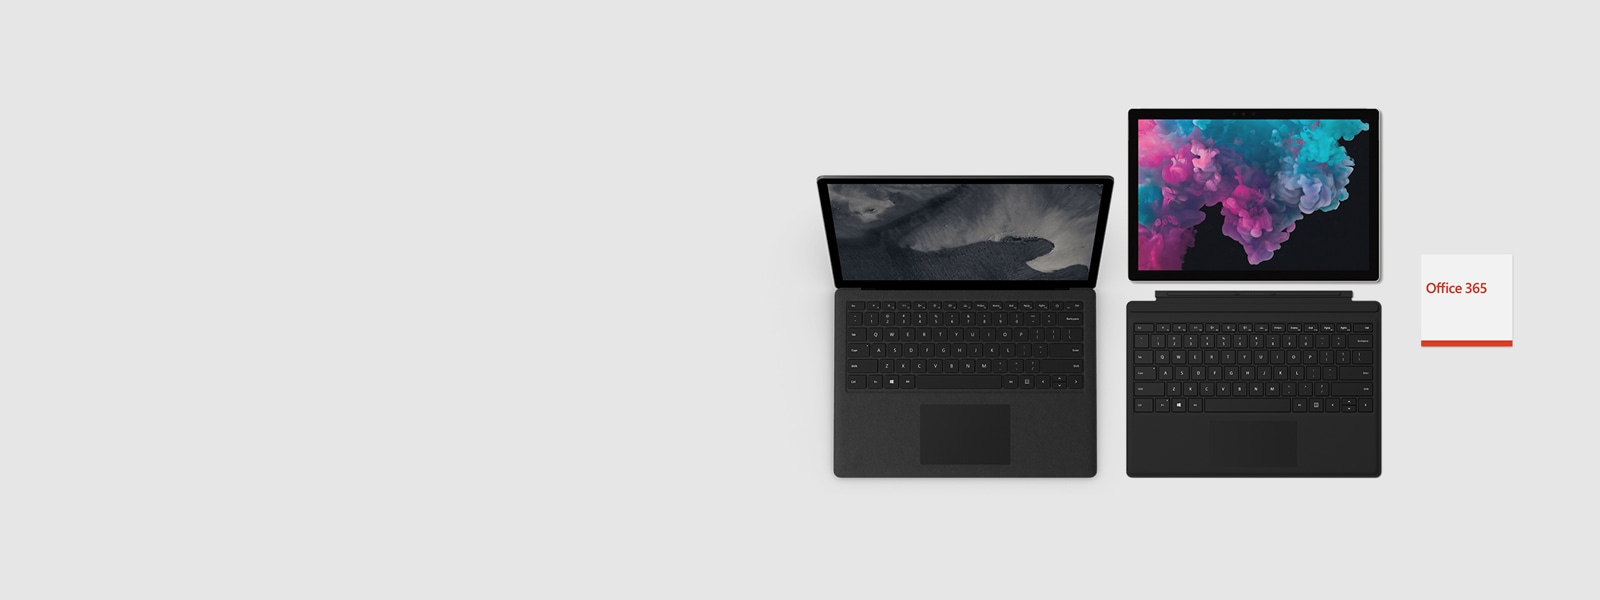 Surface Laptop 2 and Surface Pro 6 + Office 365